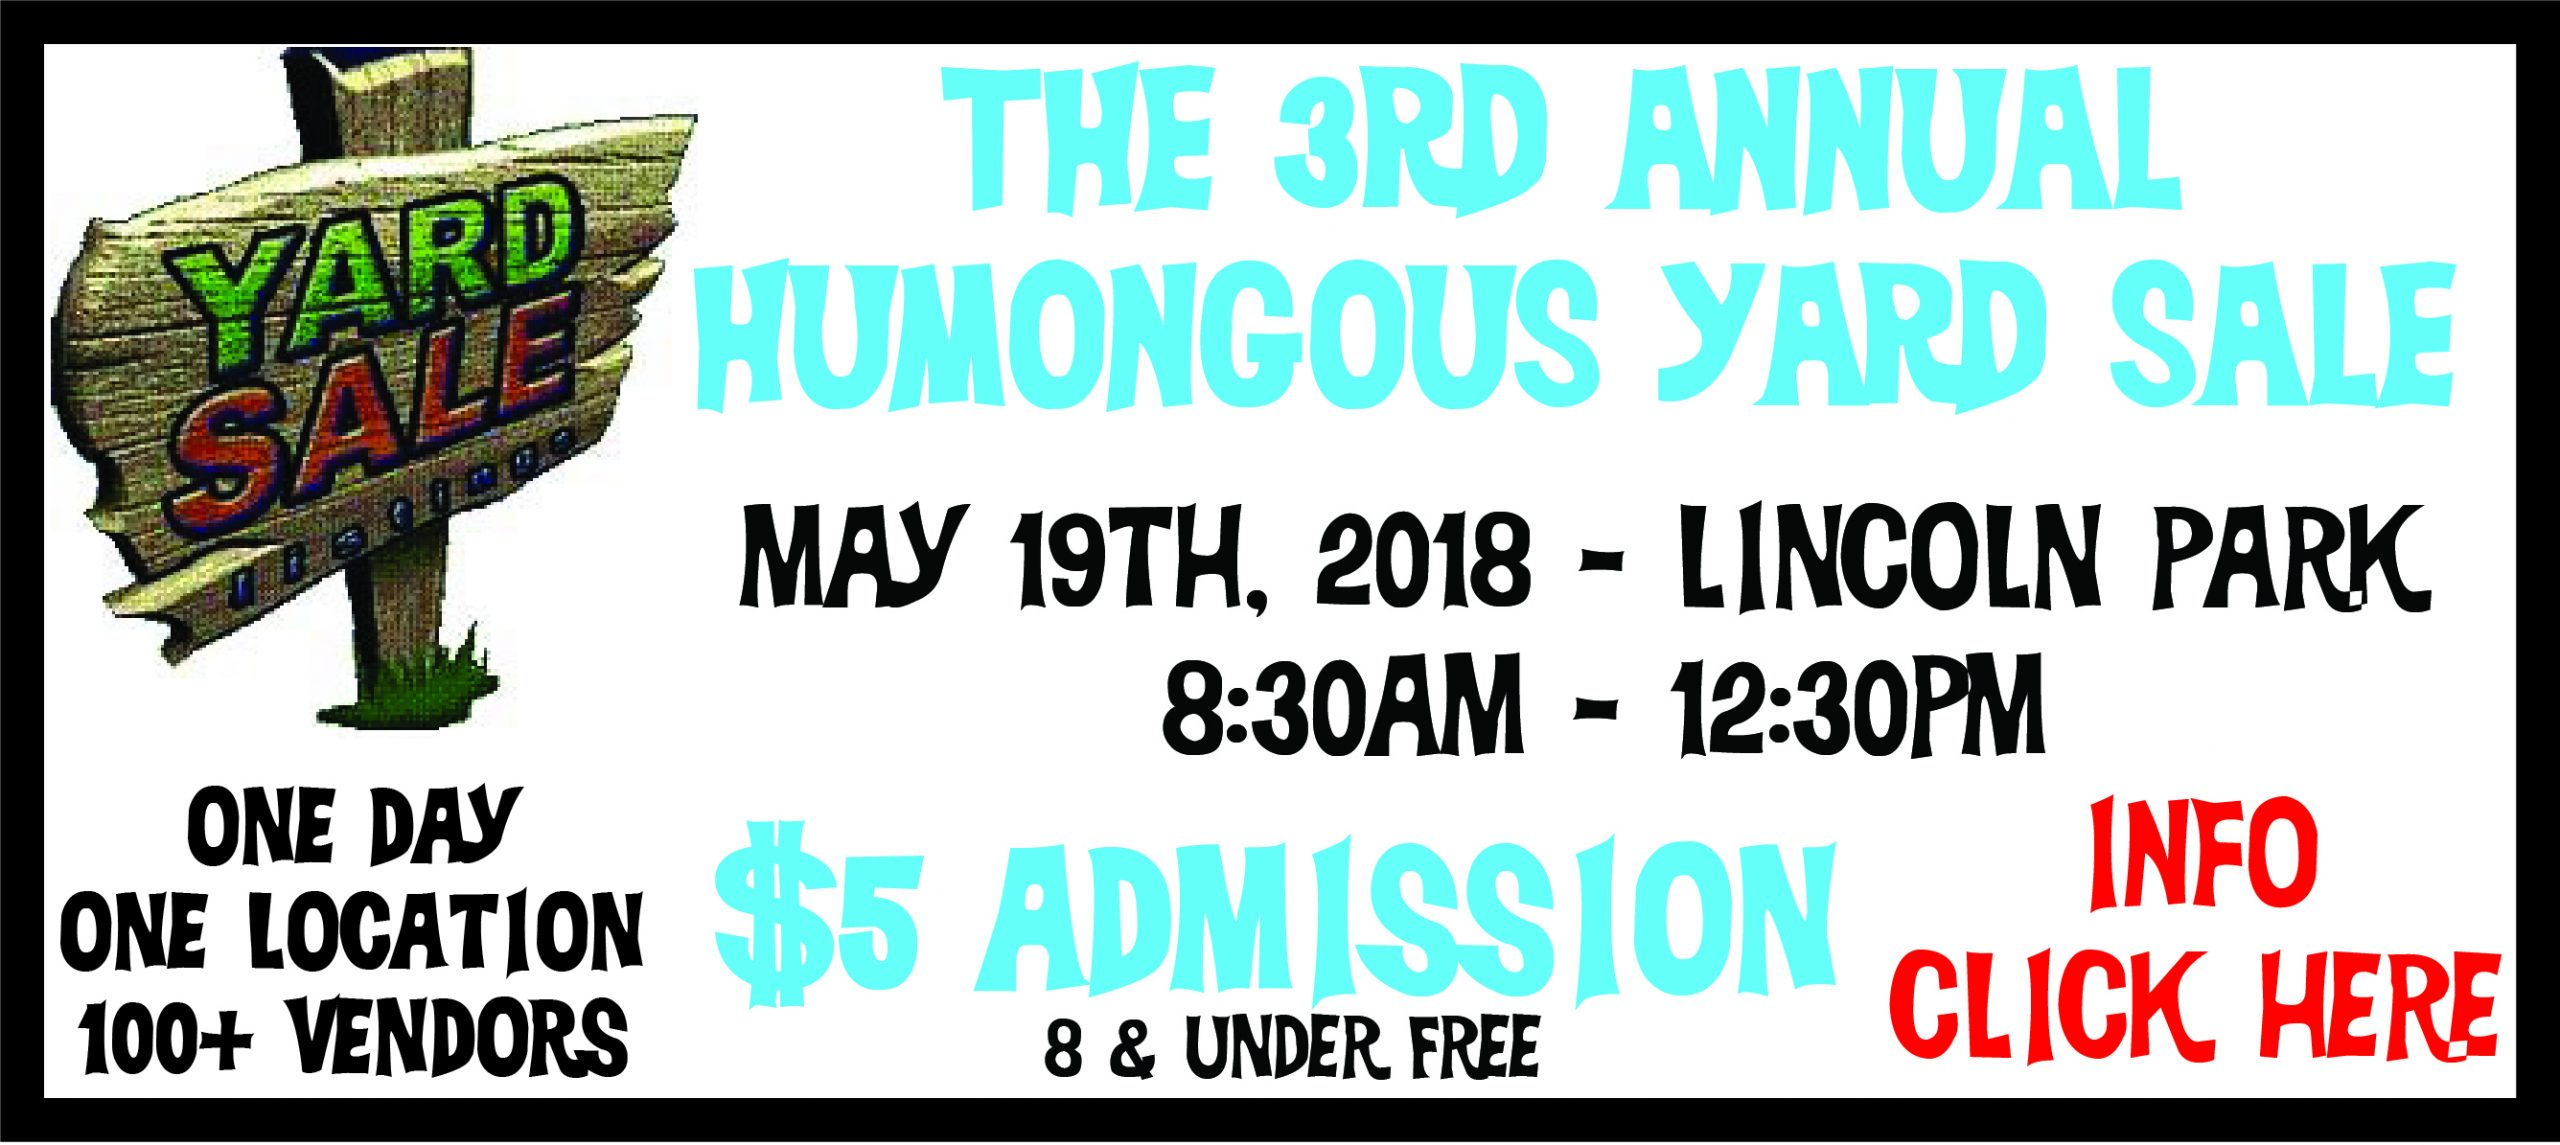 Feature: http://www.thevault1007.com/humongous-yard-sale/